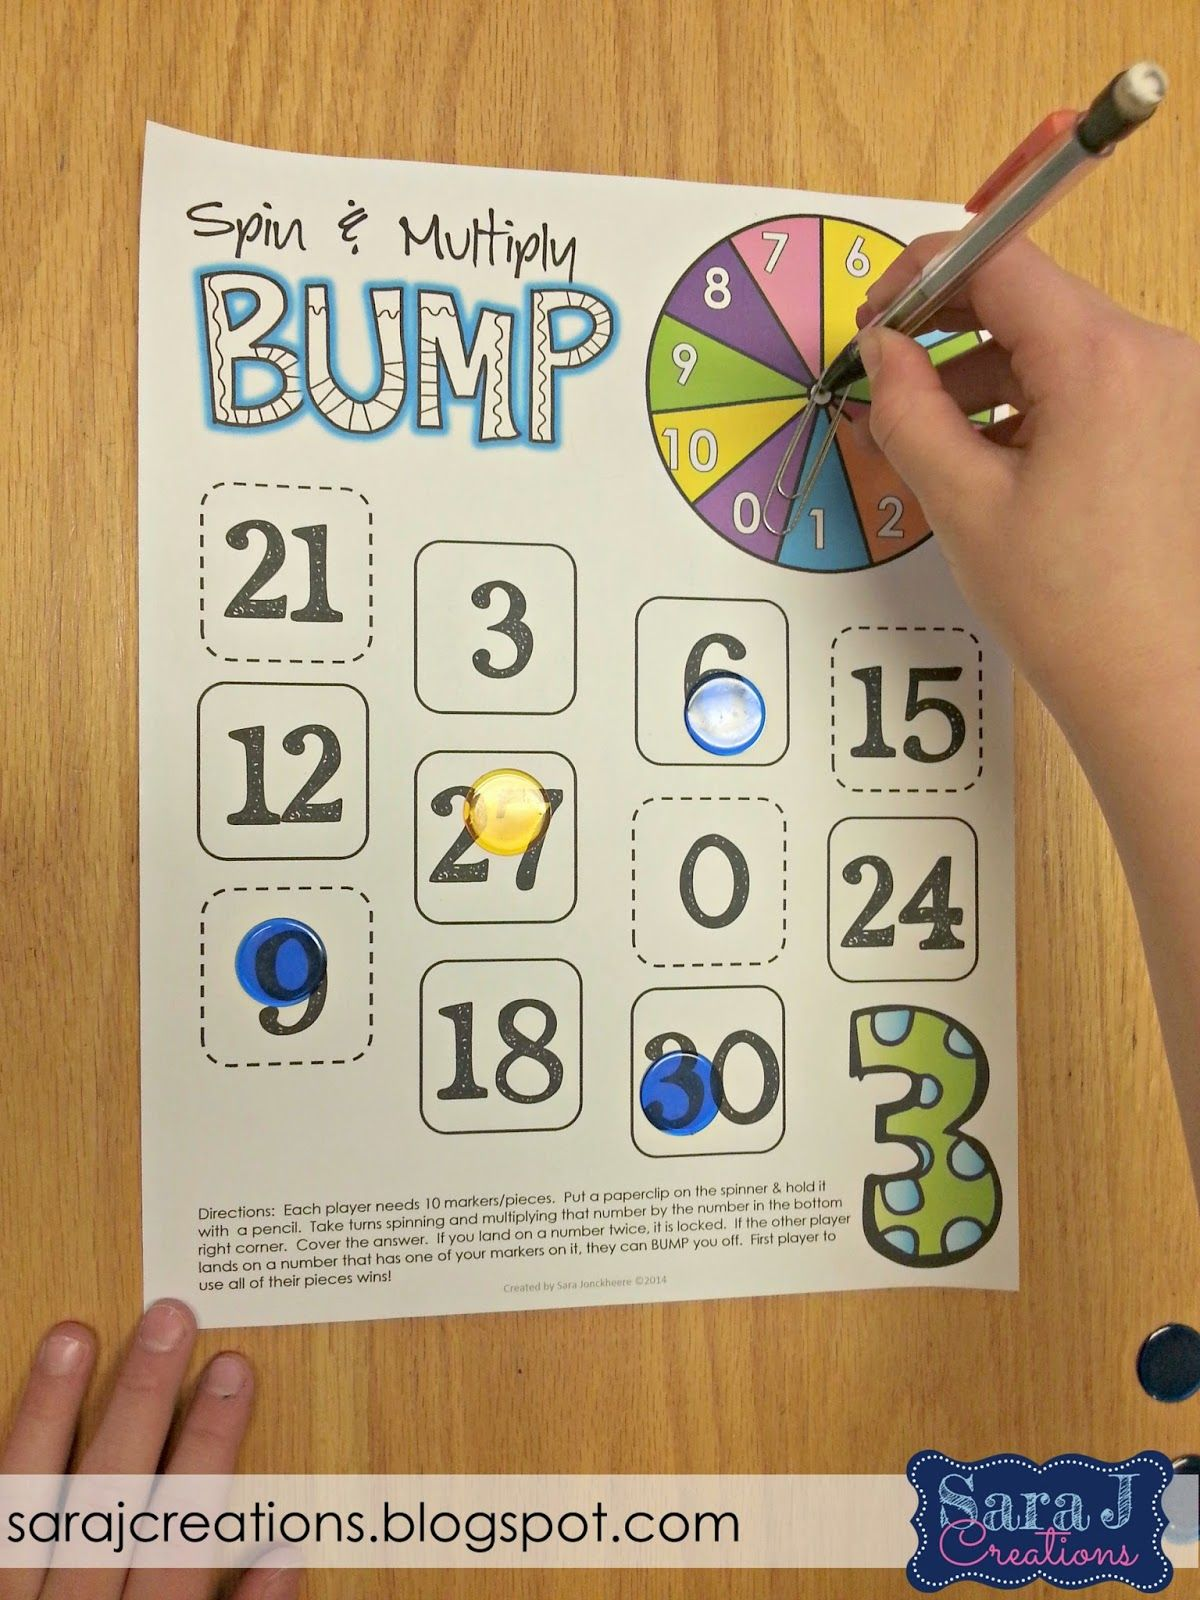 Reviewing multiplication during tutoring.  Spin and Multiply Bump.  Practice multiplying numbers up to 10x10.  Different game boards for numbers 1-10.  Just add a paperclip and pencil to use as a spinner and you are ready to go!  Directions included.  Includes color and black and white versions.